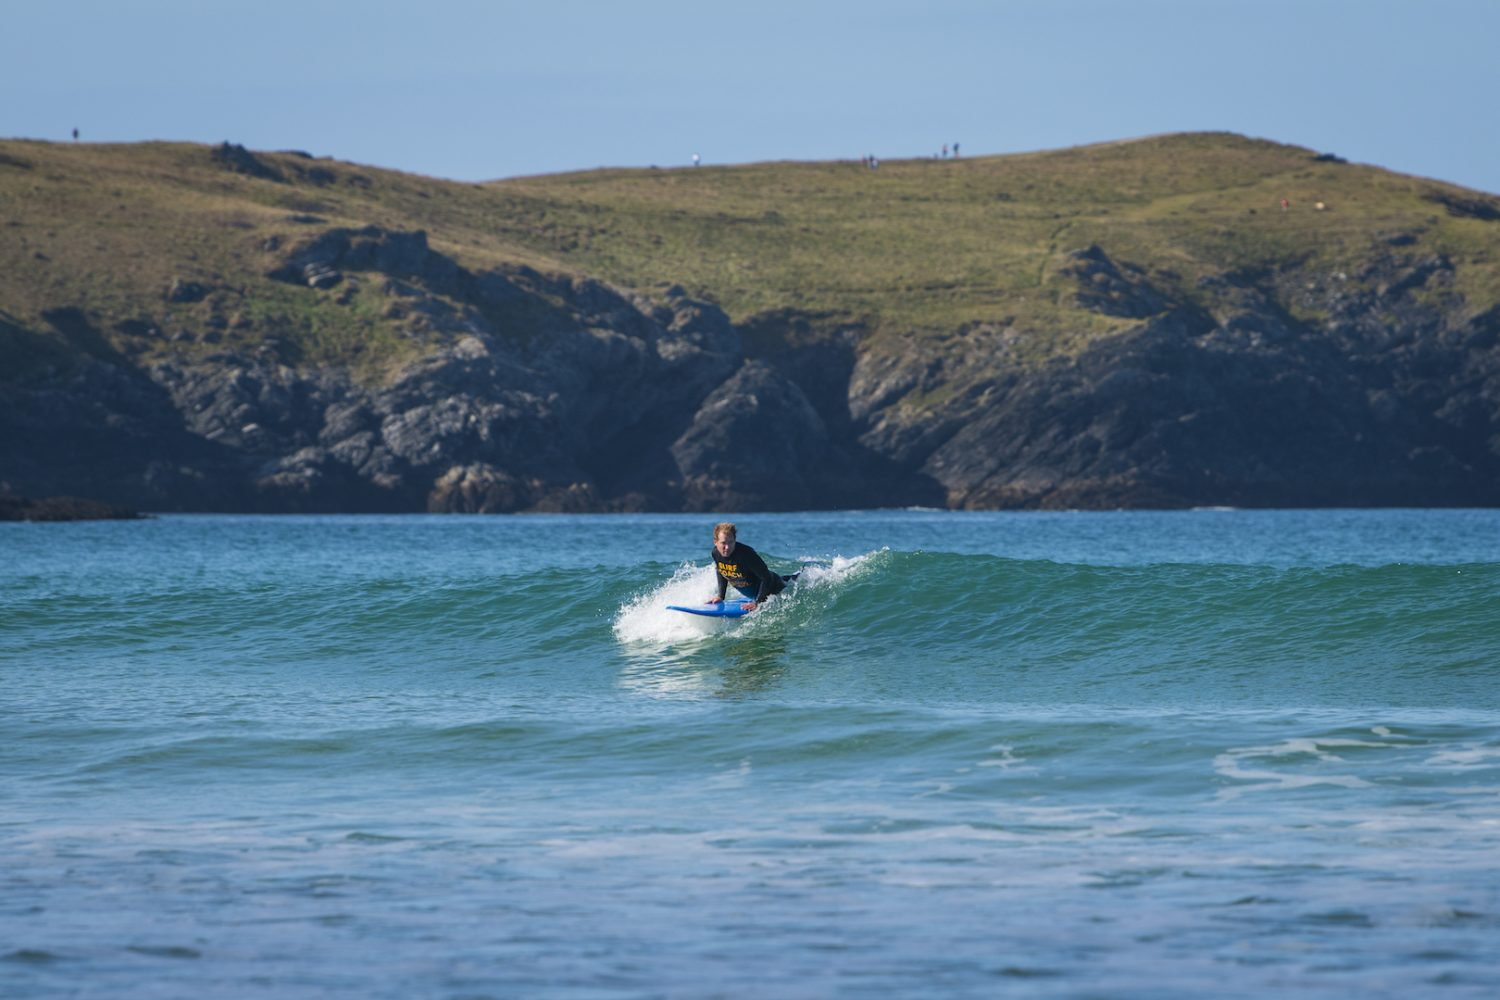 surfing - lesson-surfing-newquay